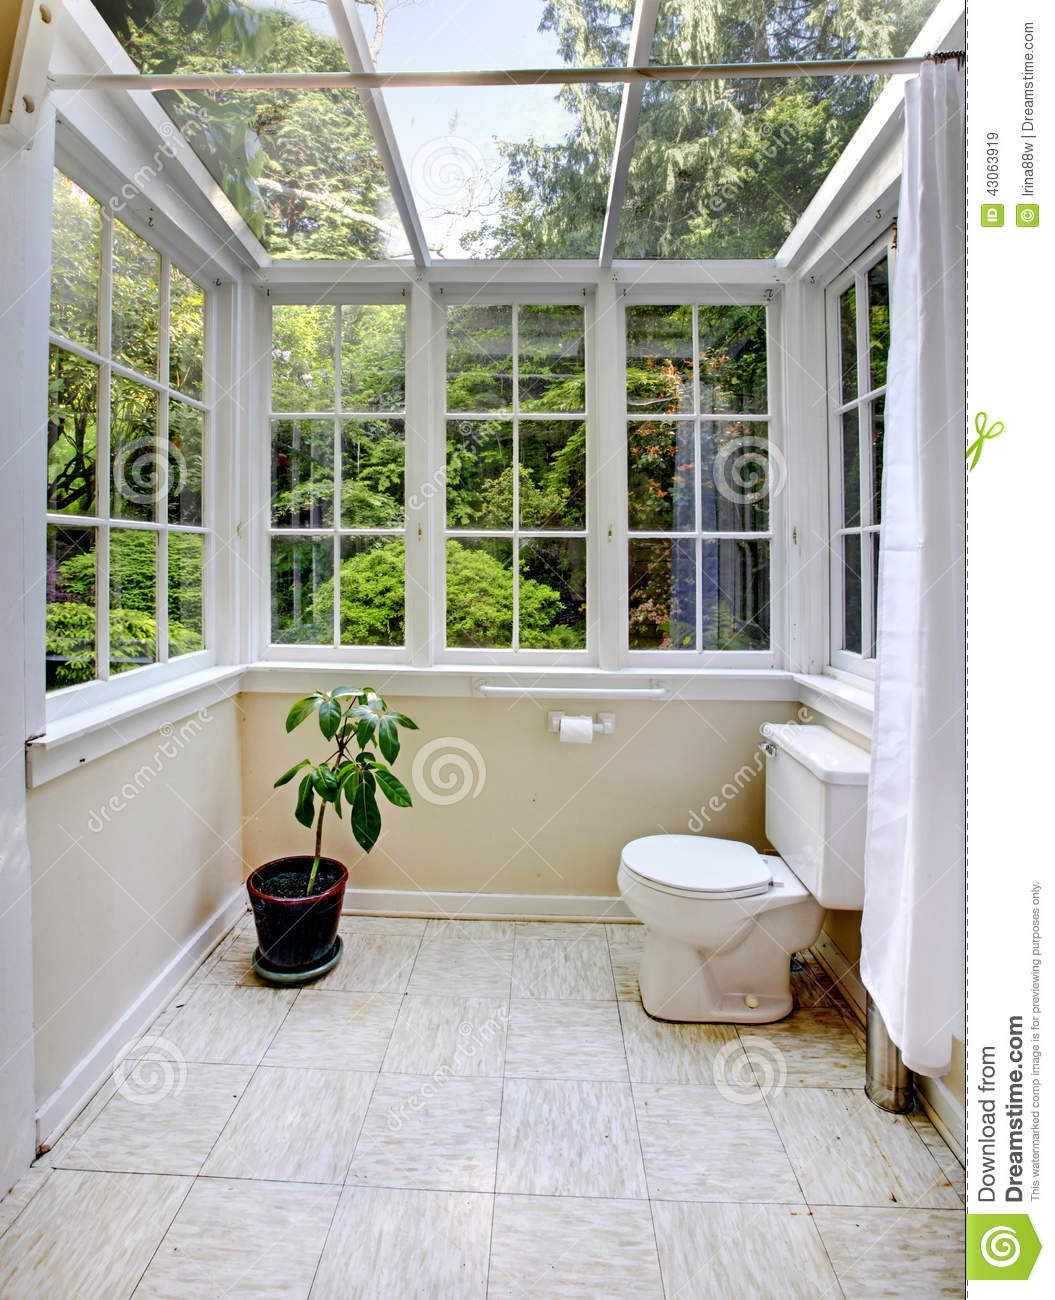 Countryside Bathroom With Glass Wall And Ceiling Stock